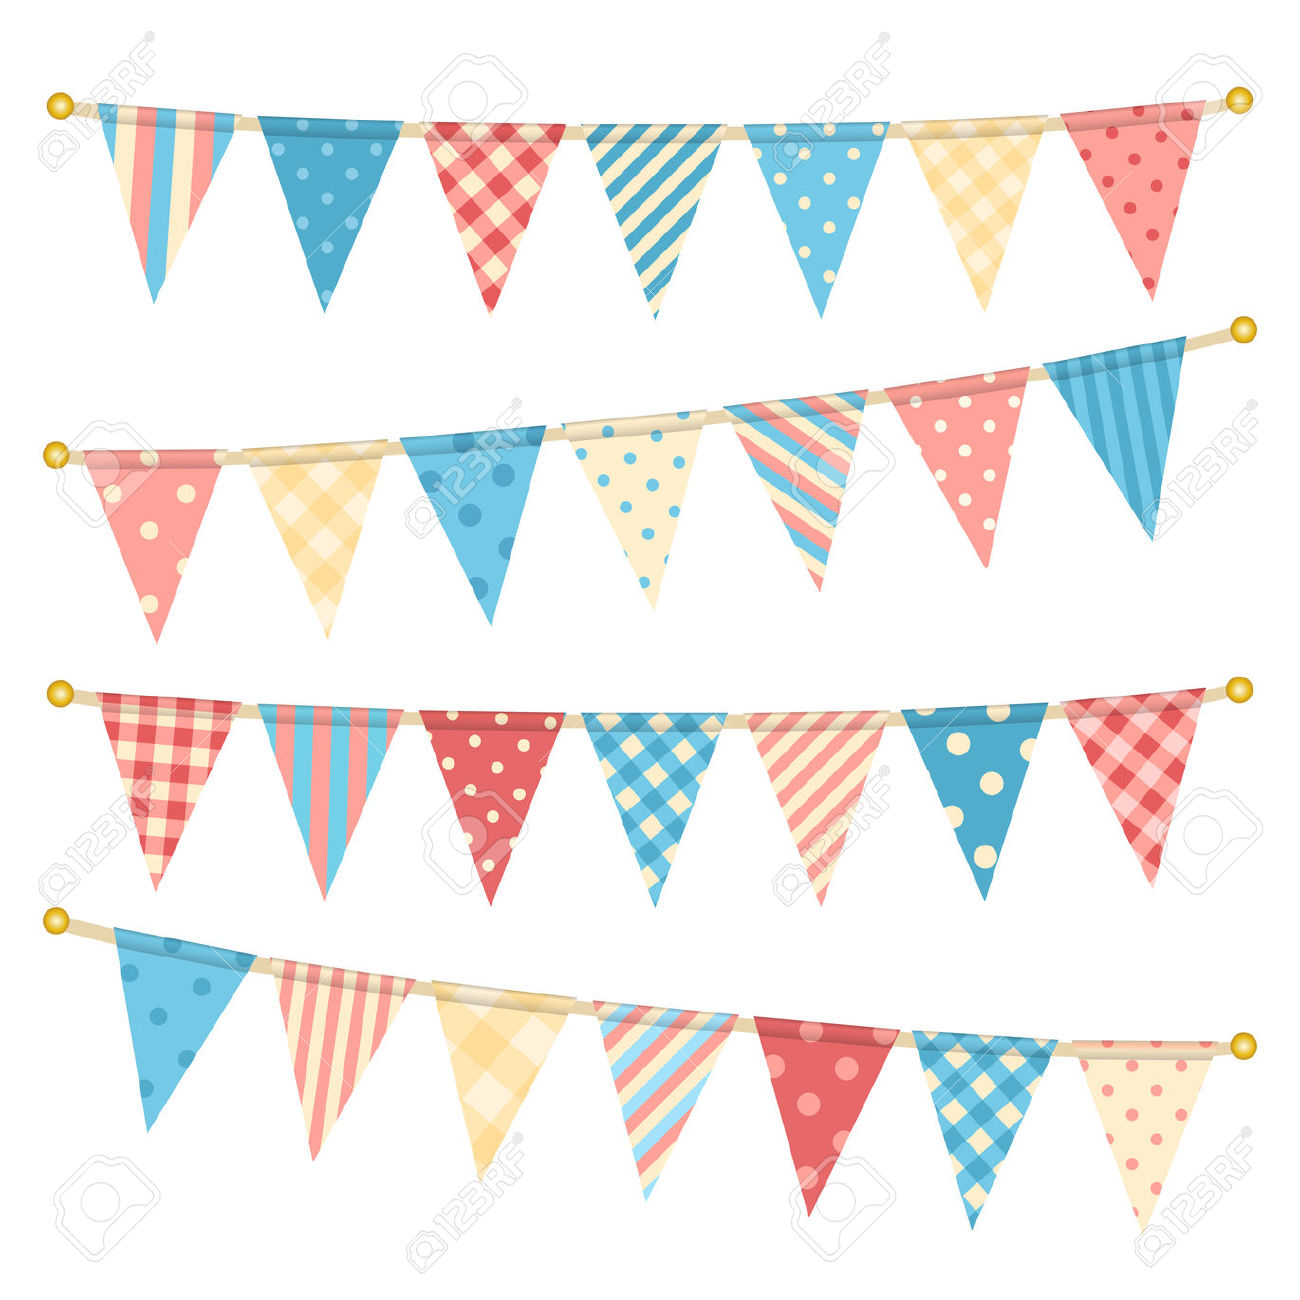 Bright pastel flag bunting clipart svg royalty free stock Vector Triangle Bunting Flags. Royalty Free Cliparts, Vectors, And ... svg royalty free stock